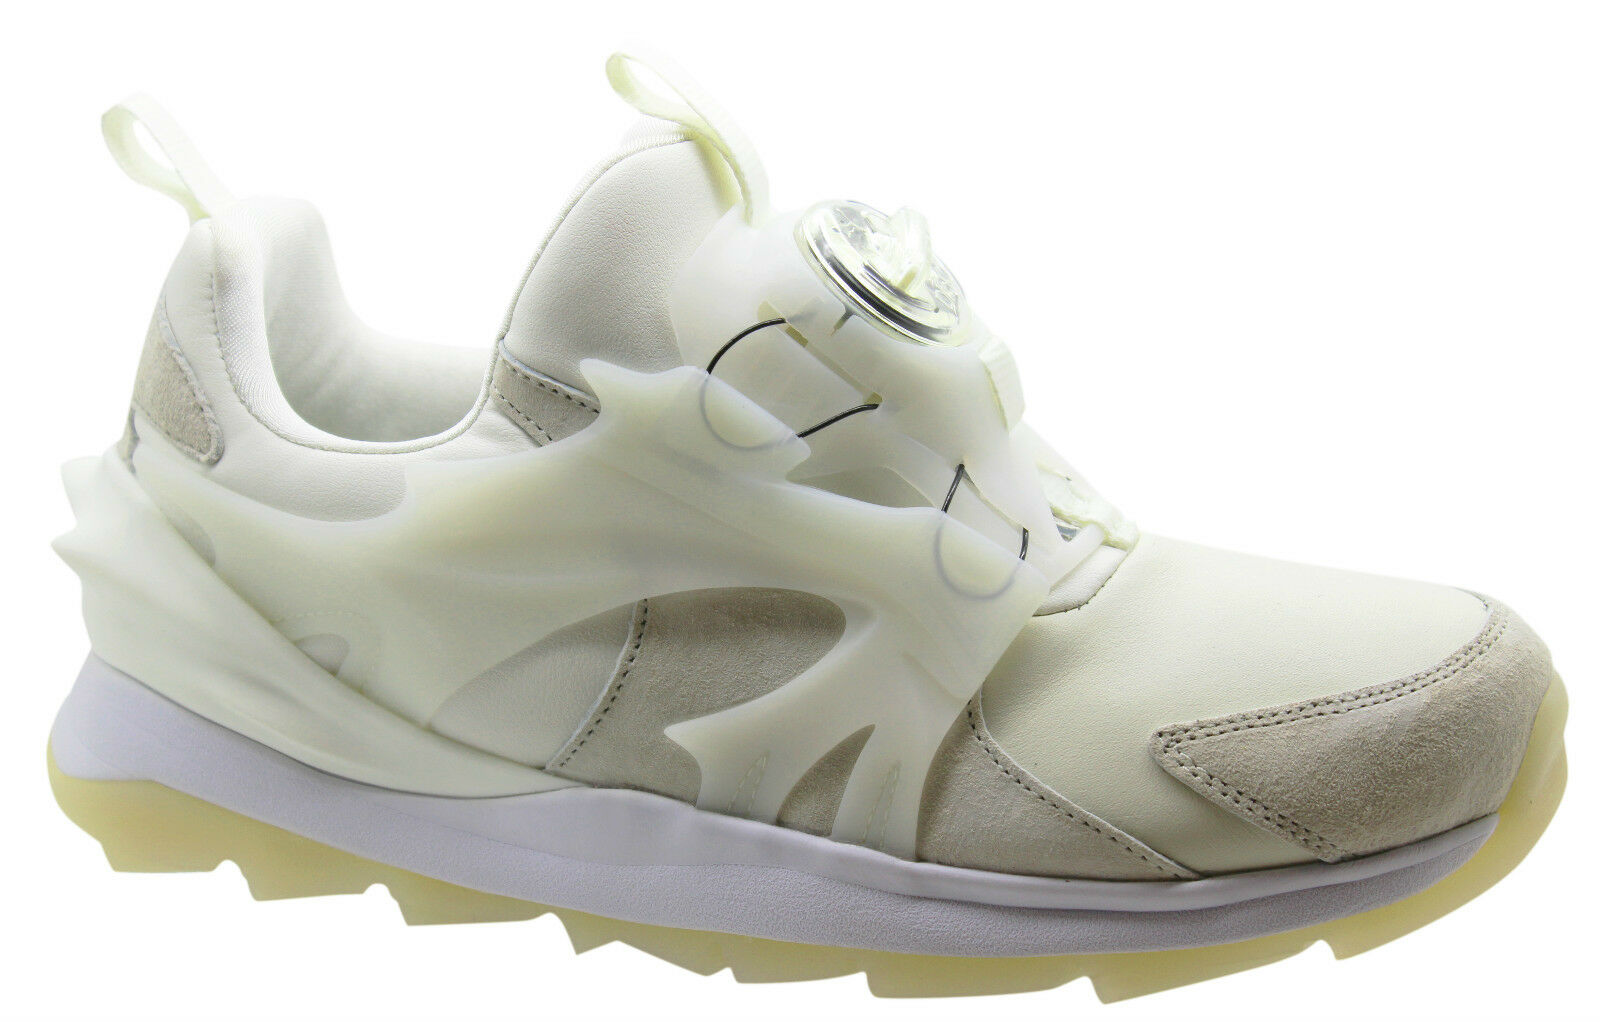 Puma Disc Marshmallow Swift Tech Hombre Trainers Marshmallow Disc Blanco casuales 356904 01 U52 c80c9e